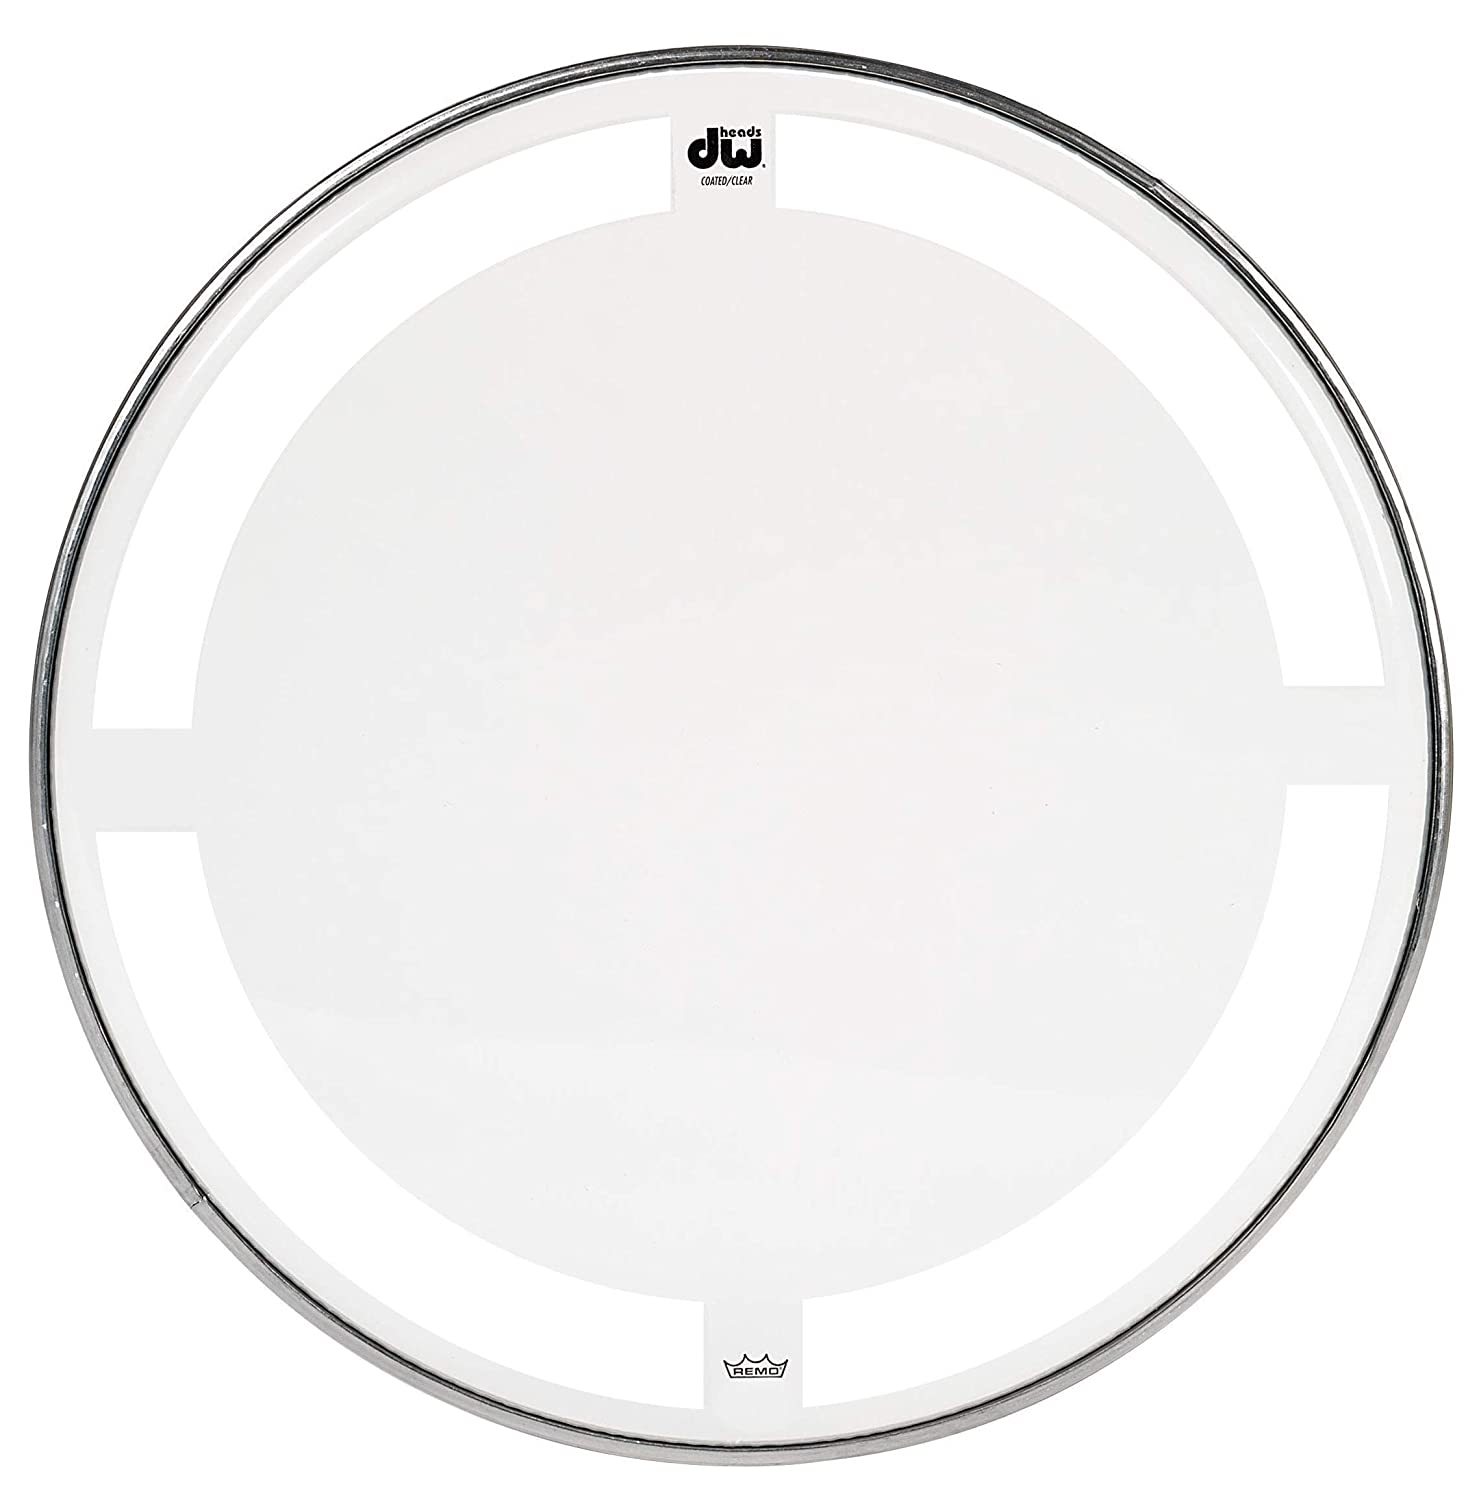 Drum Workshop Coated Clear Drum Head, 18 inch 71nlXthfw6L